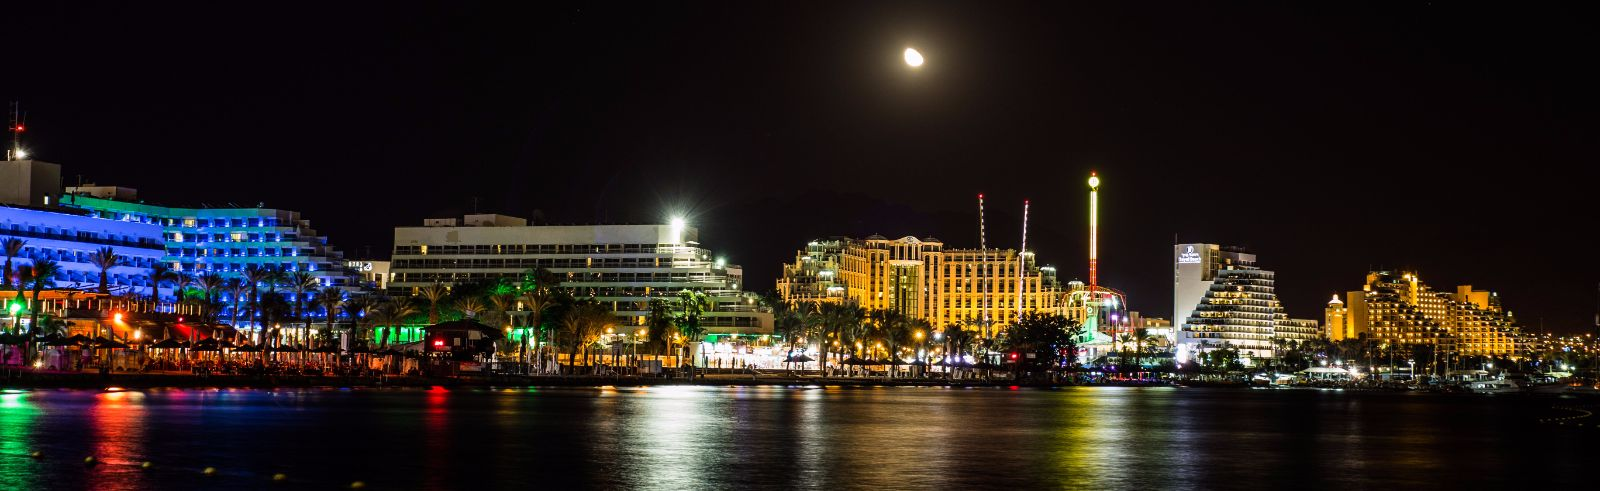 Eilat_Coastline_At_Night